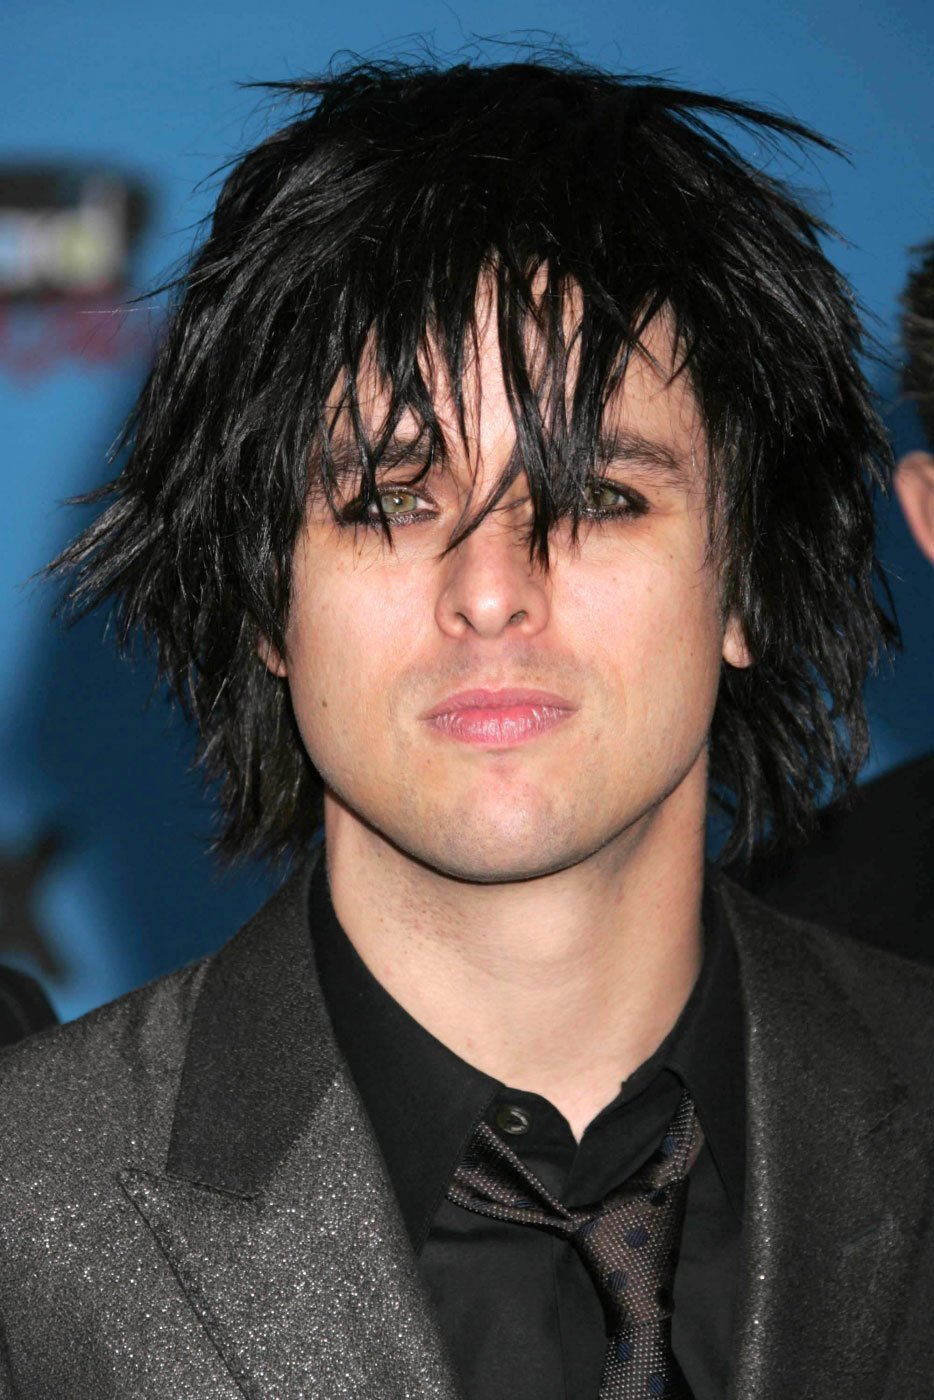 The Best Billie Joe Armstrong Hairstyle Easyhairstyler Pictures